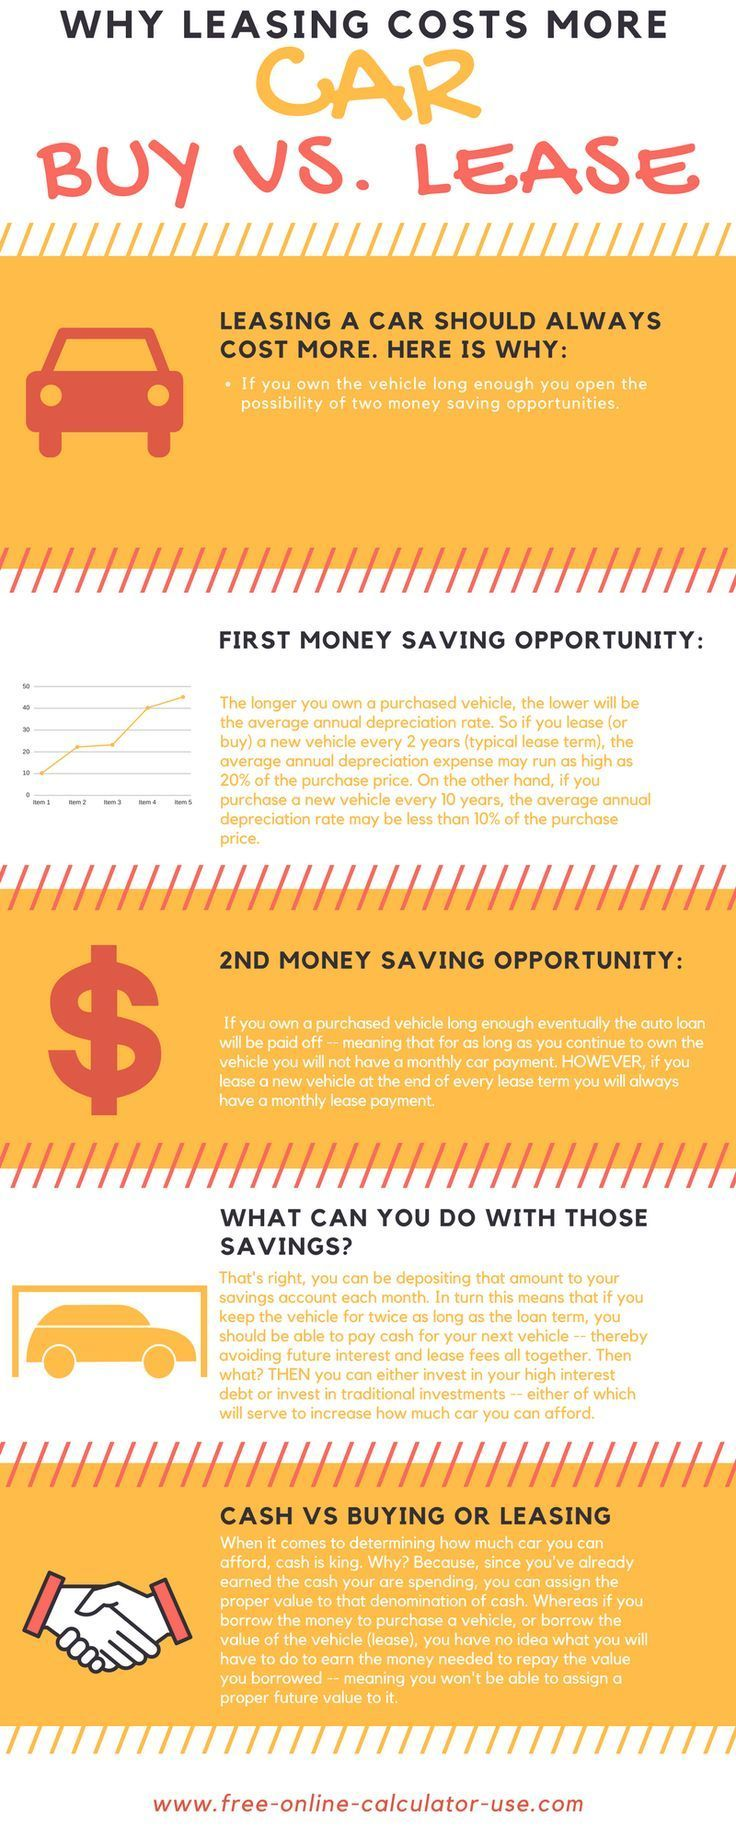 Car Lease Vs Buy Calculator With Lifetime Cost Analysis Budgeting Money Car Lease Finance Advice